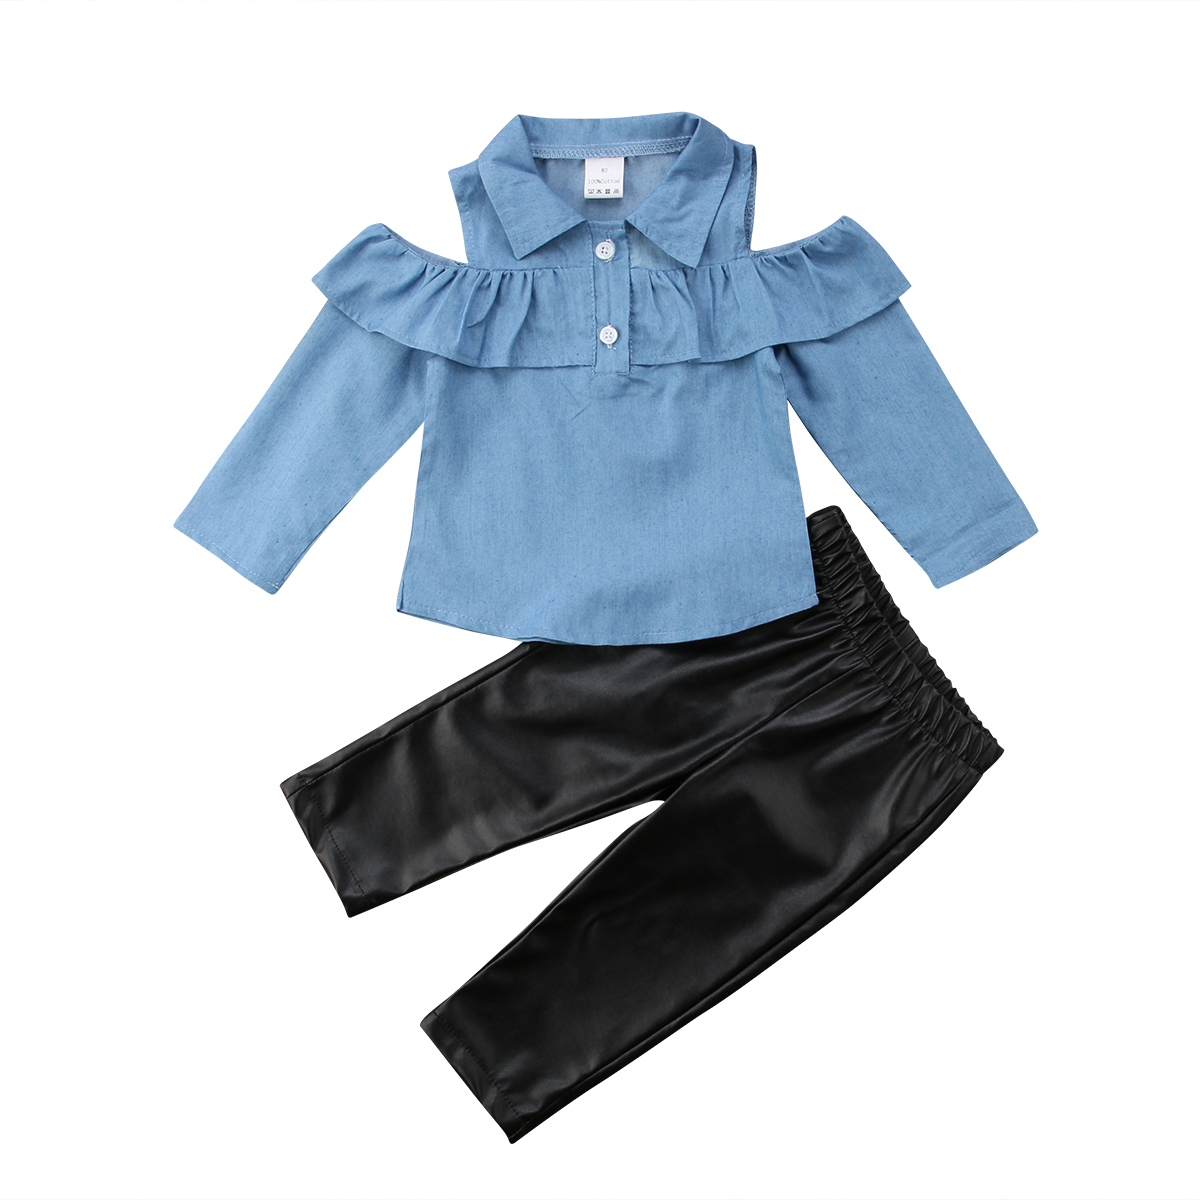 >Emmababy Toddler Kids Baby Girls Solid Denim Tops T Shirt + Long Skinny <font><b>Leather</b></font> <font><b>Pants</b></font> <font><b>Outfits</b></font> Set Clothes